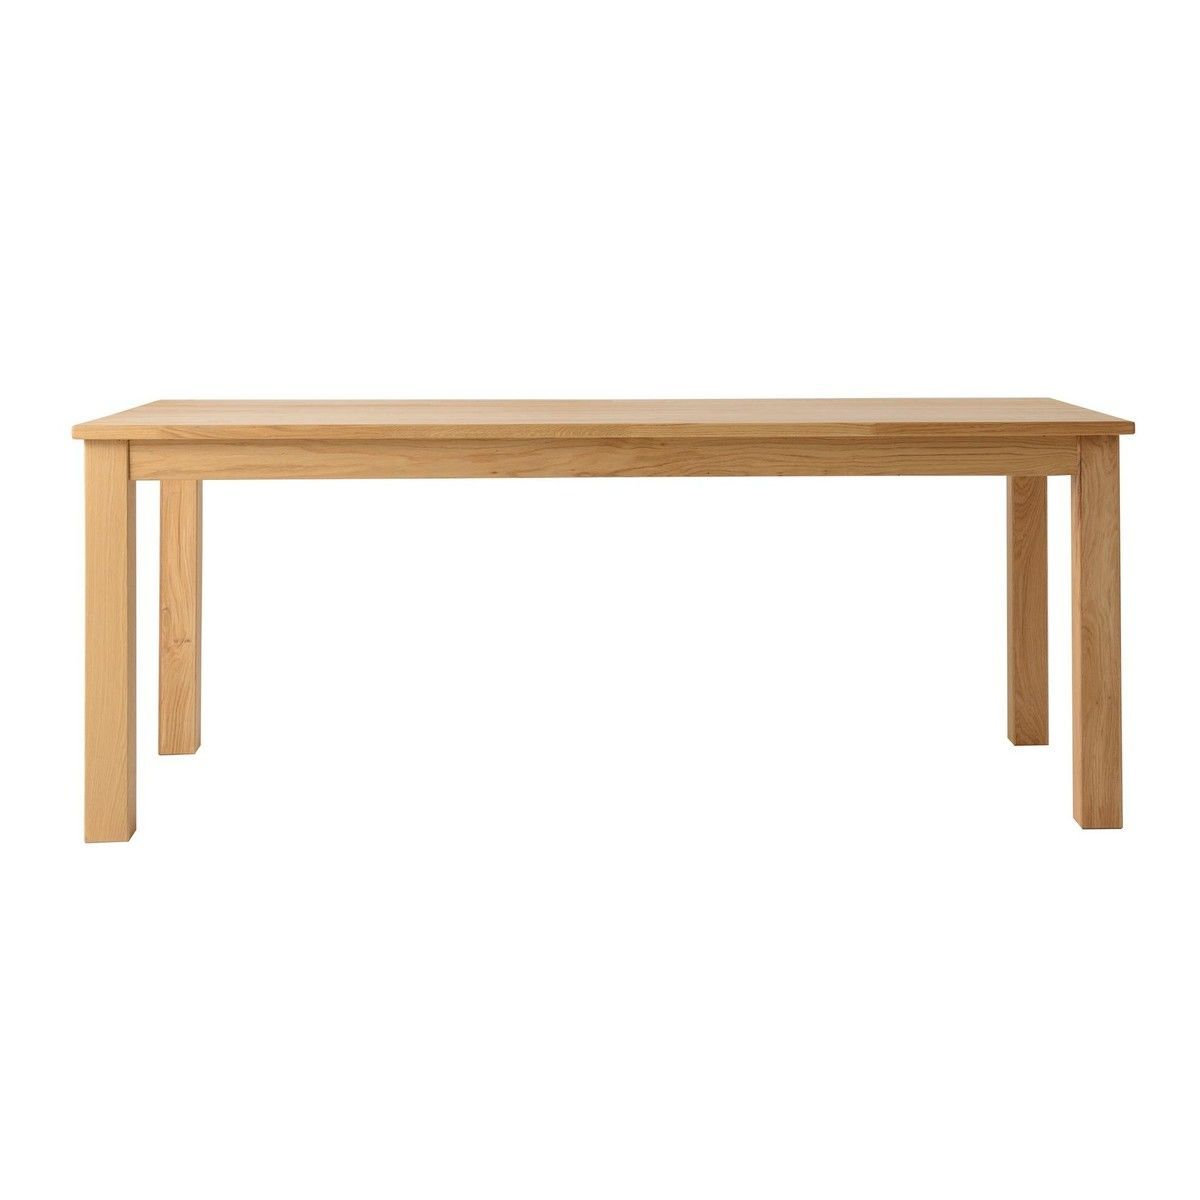 Casa solid wood dining table jan kurtz for Solid wood dining table